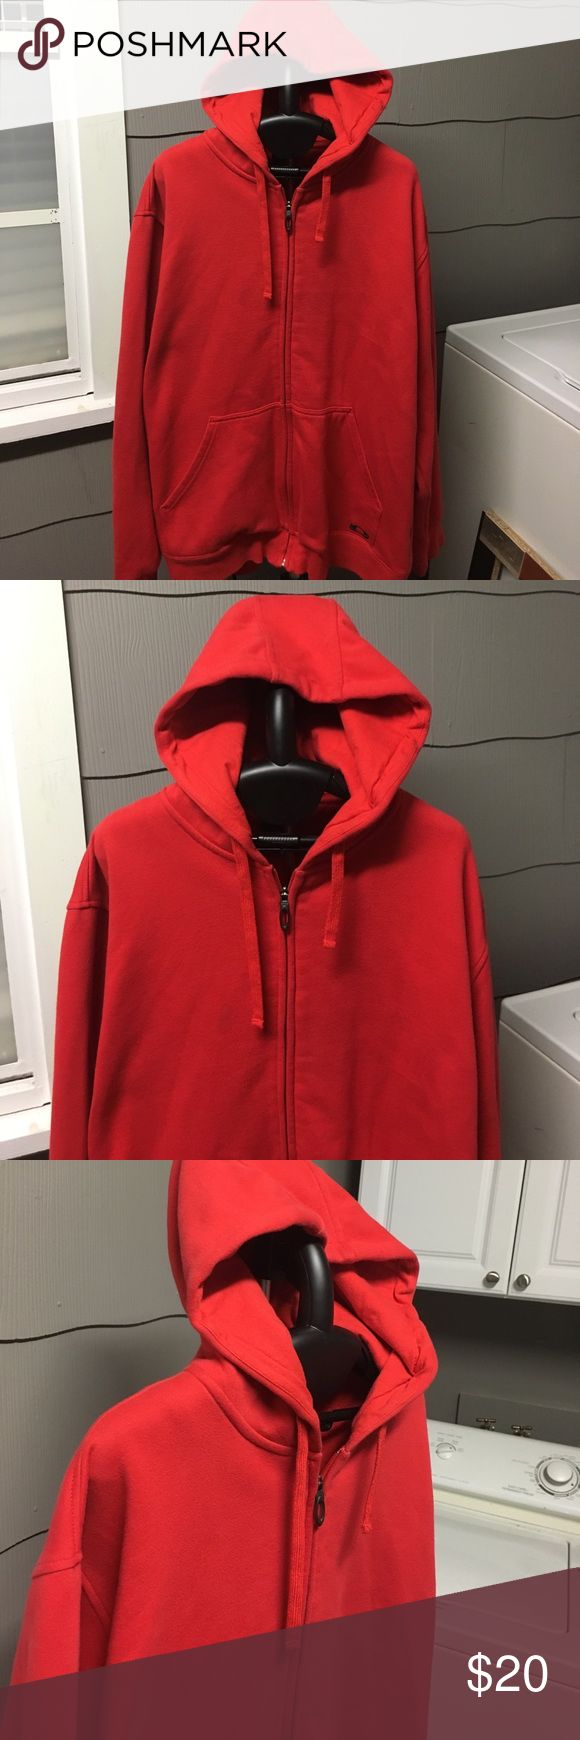 Oakley Red Hooded Sweatshirt Solid red zip up with Oakley logo on front pocket and Oakley just under back of hood. Good condition Oakley Shirts Sweatshirts & Hoodies